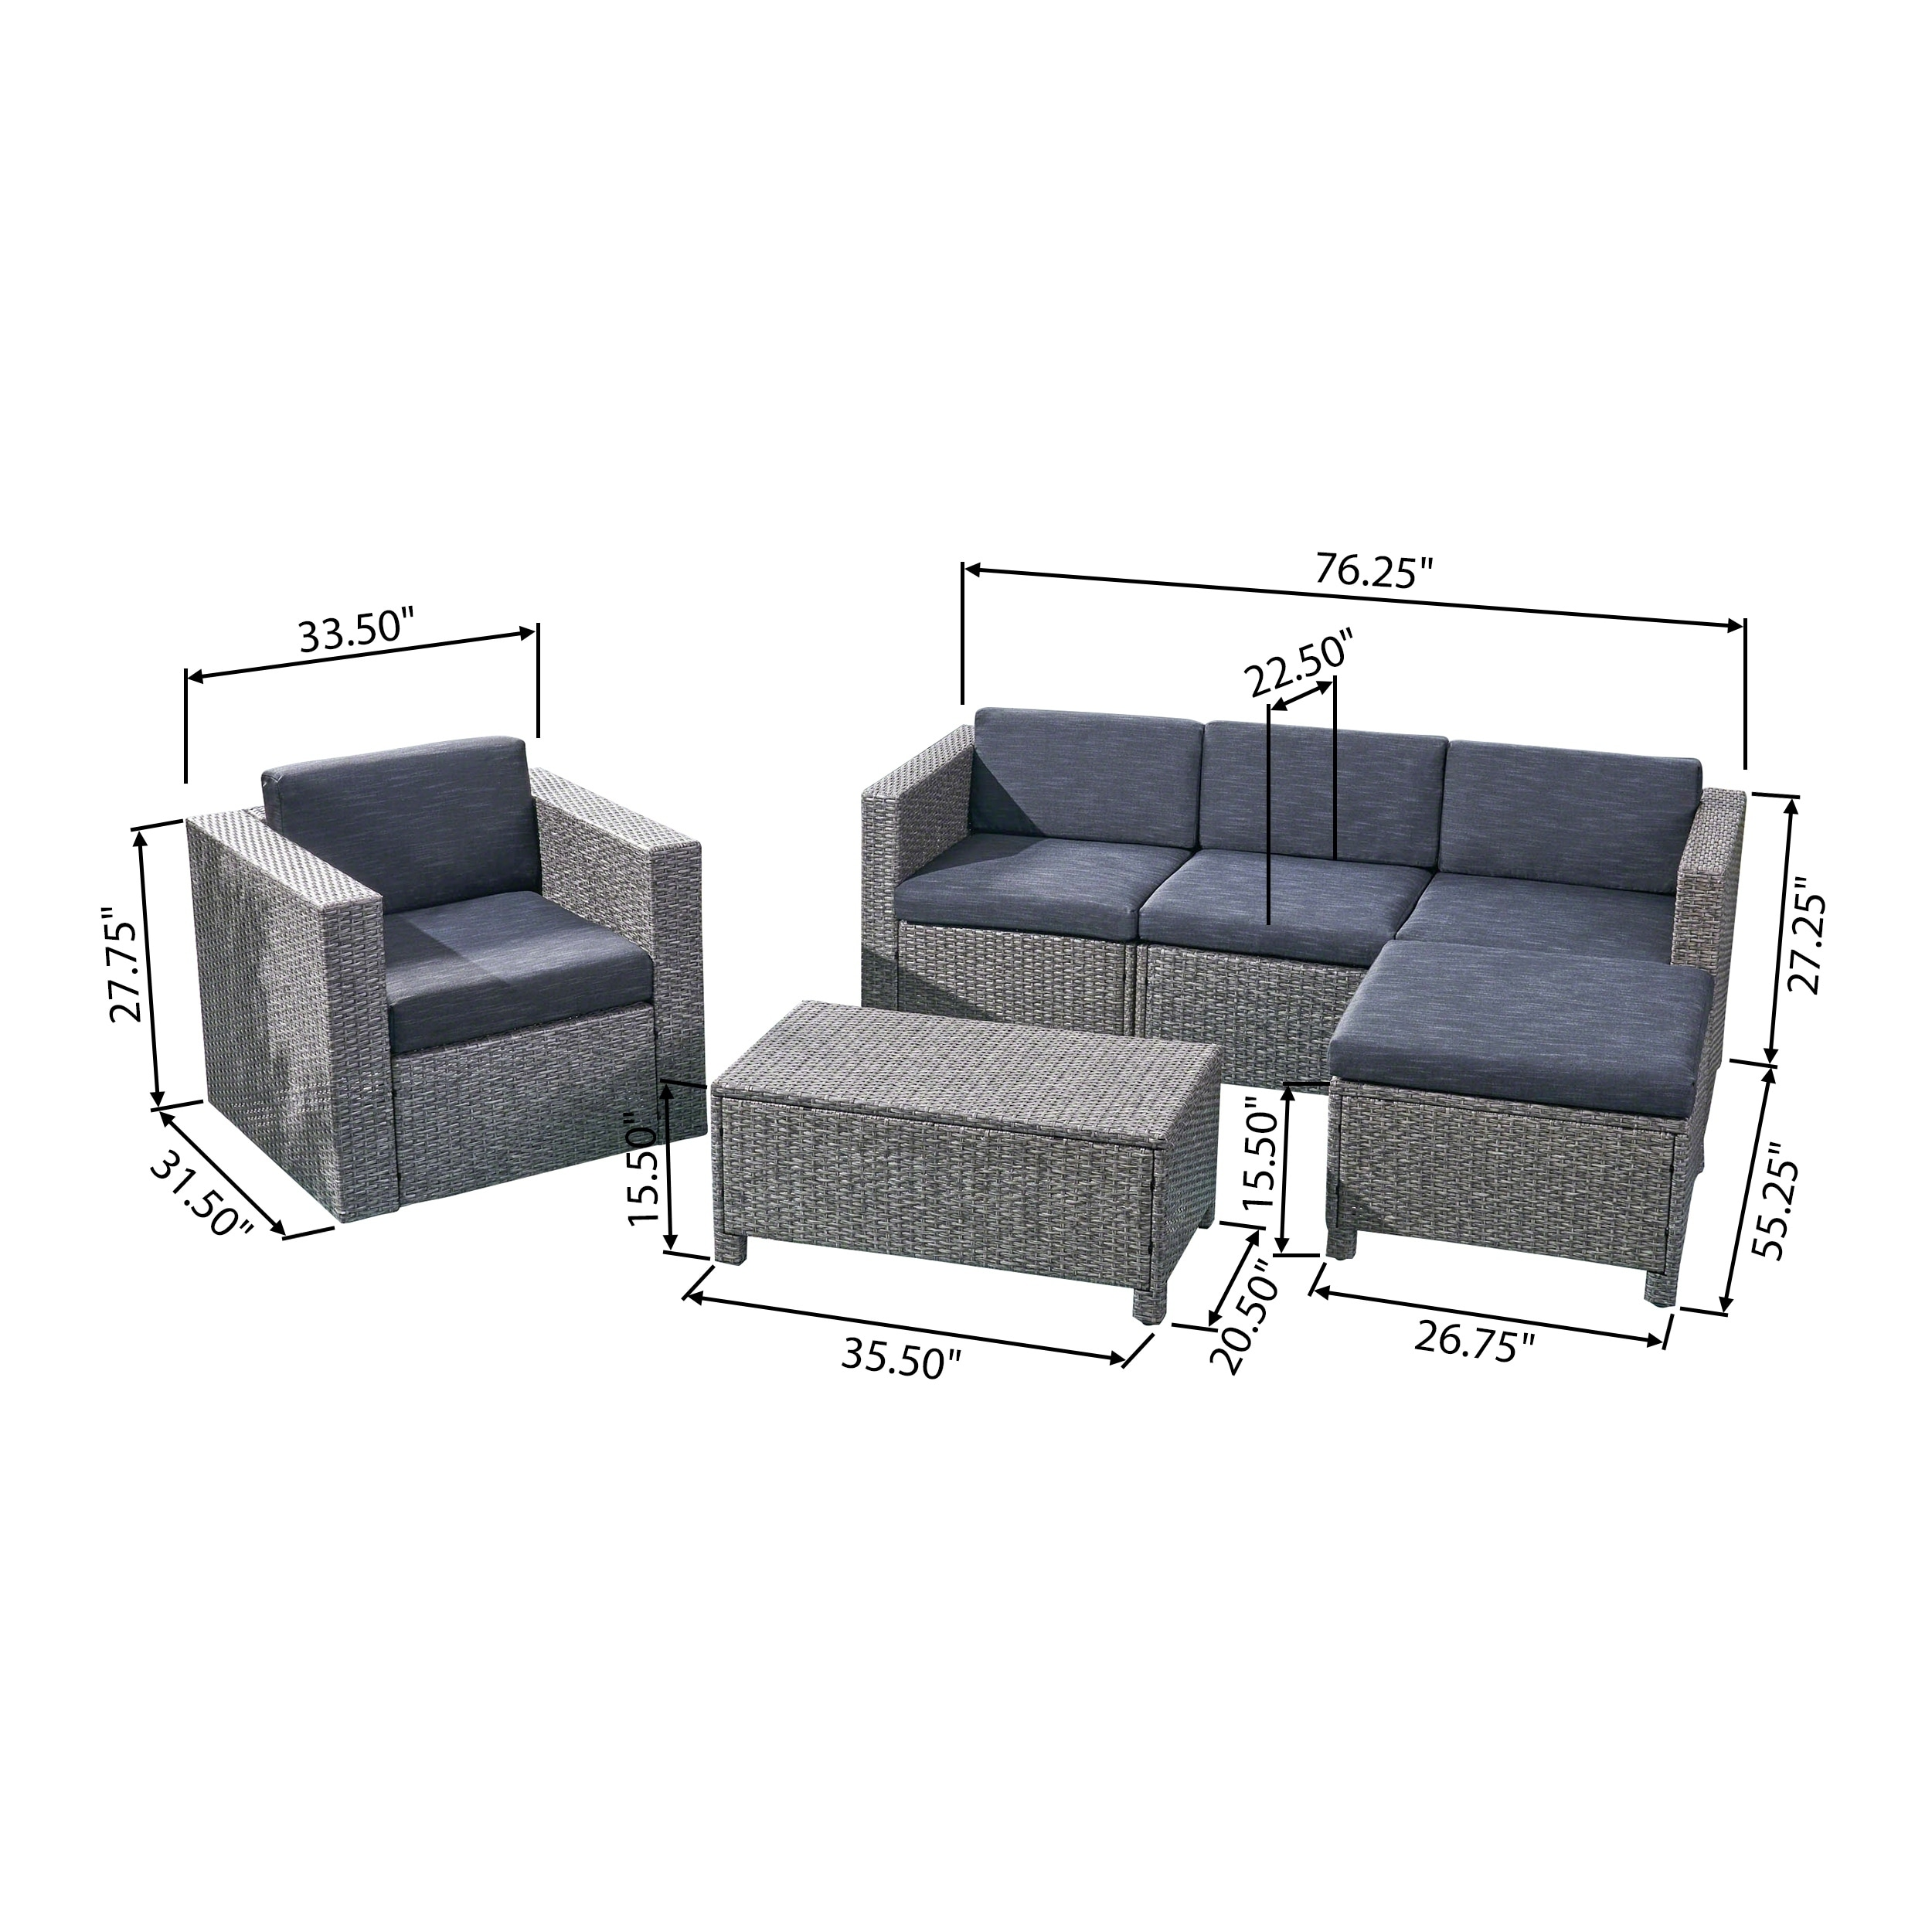 Shop Puerta Outdoor 4 Seater L-Shaped Sofa Set with Cushions by ...